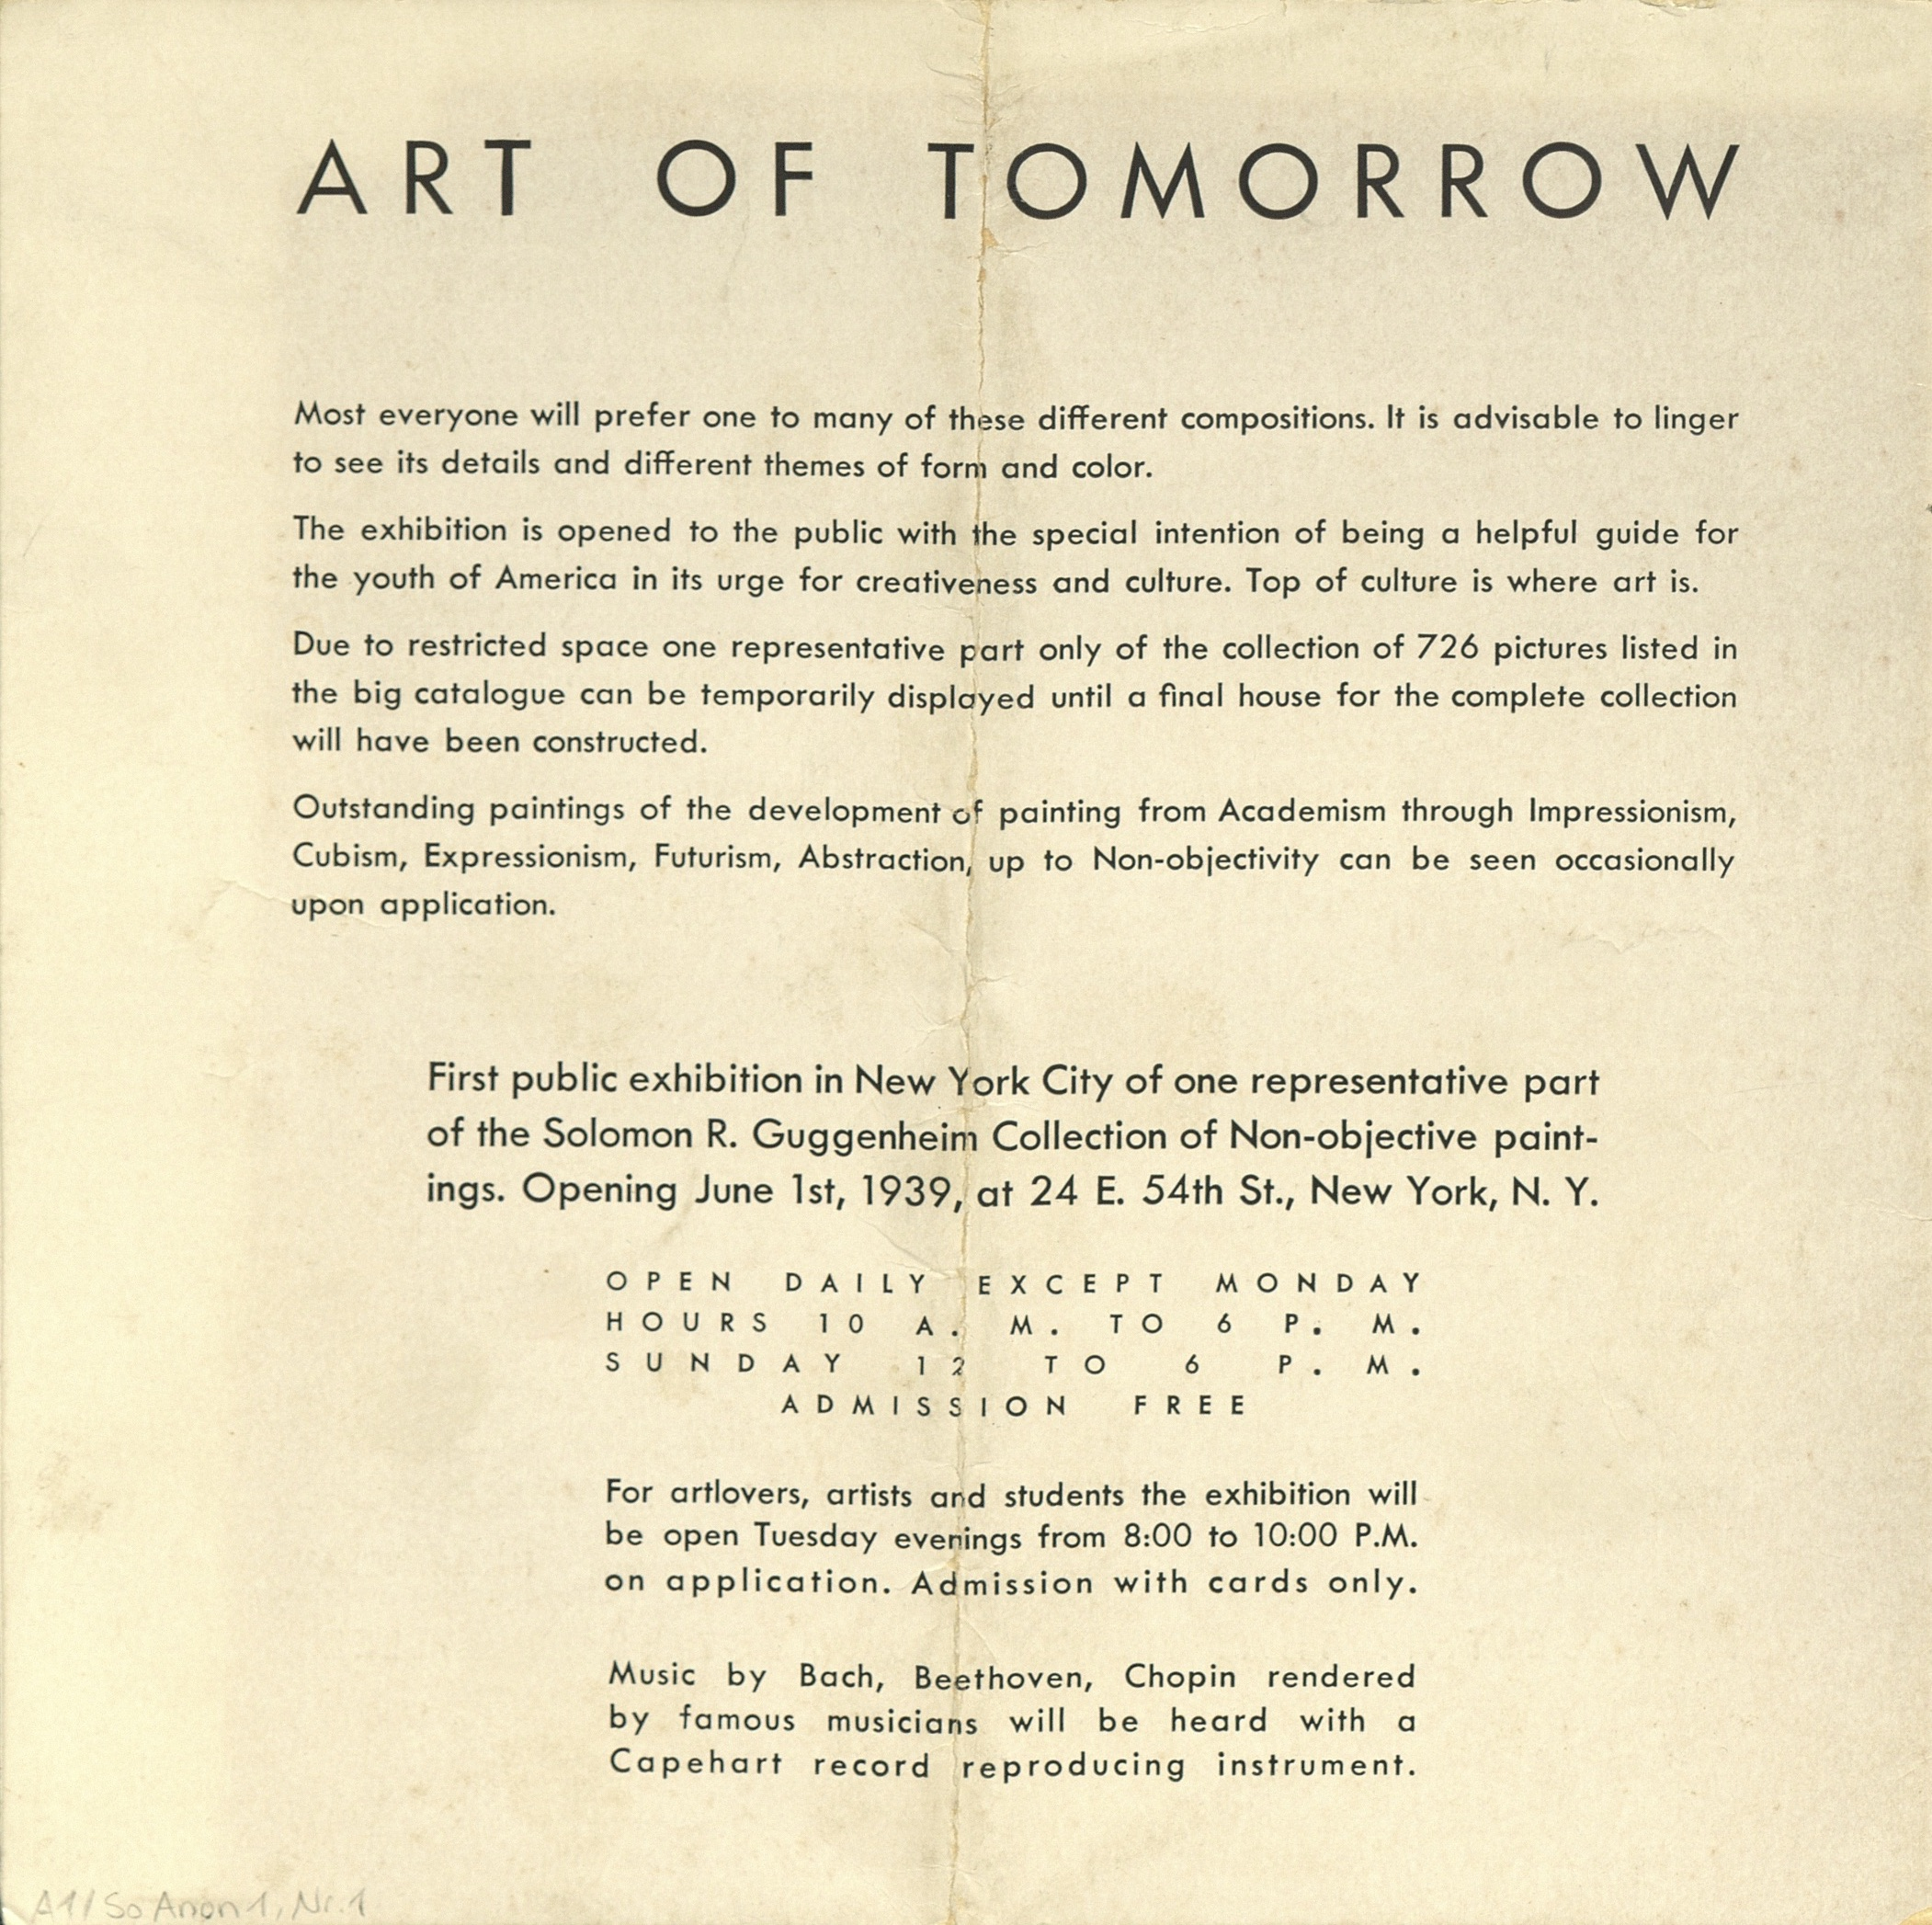 Art Of Tomorrow, Museum of Non-Objective Painting (Guggenheim), New York 1939 (invitation); Archiv der Avantgarden, Staatliche Kunstsammlungen Dresden